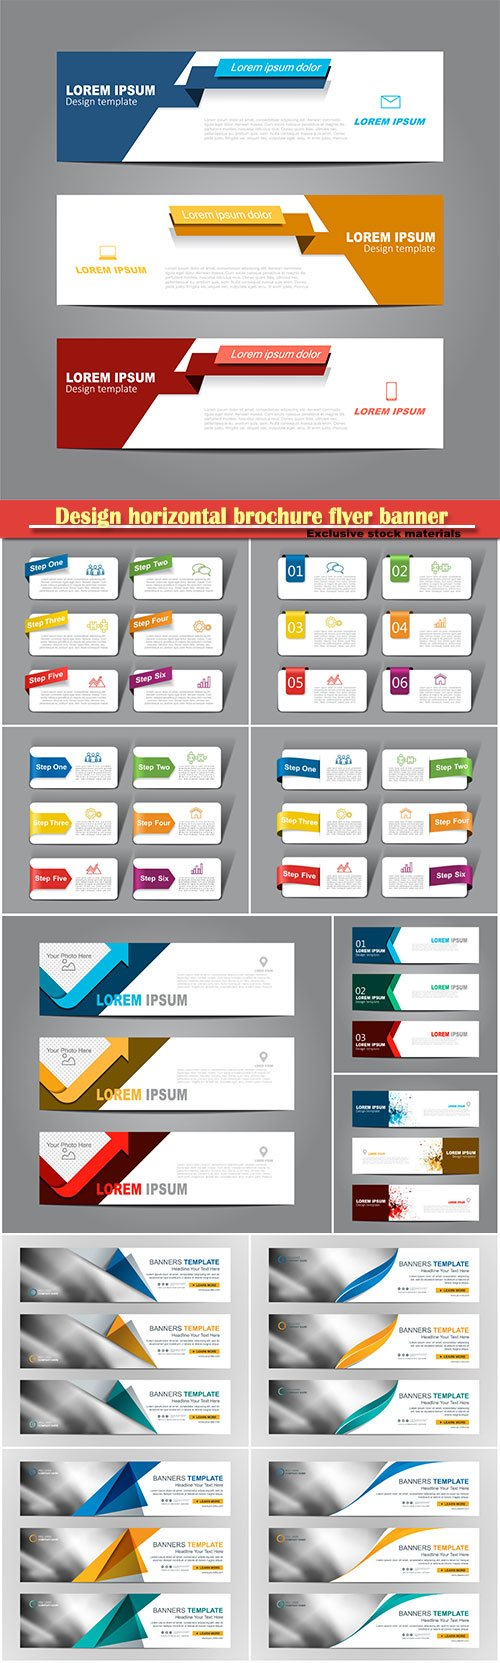 Design horizontal brochure flyer banner, vector infographic template